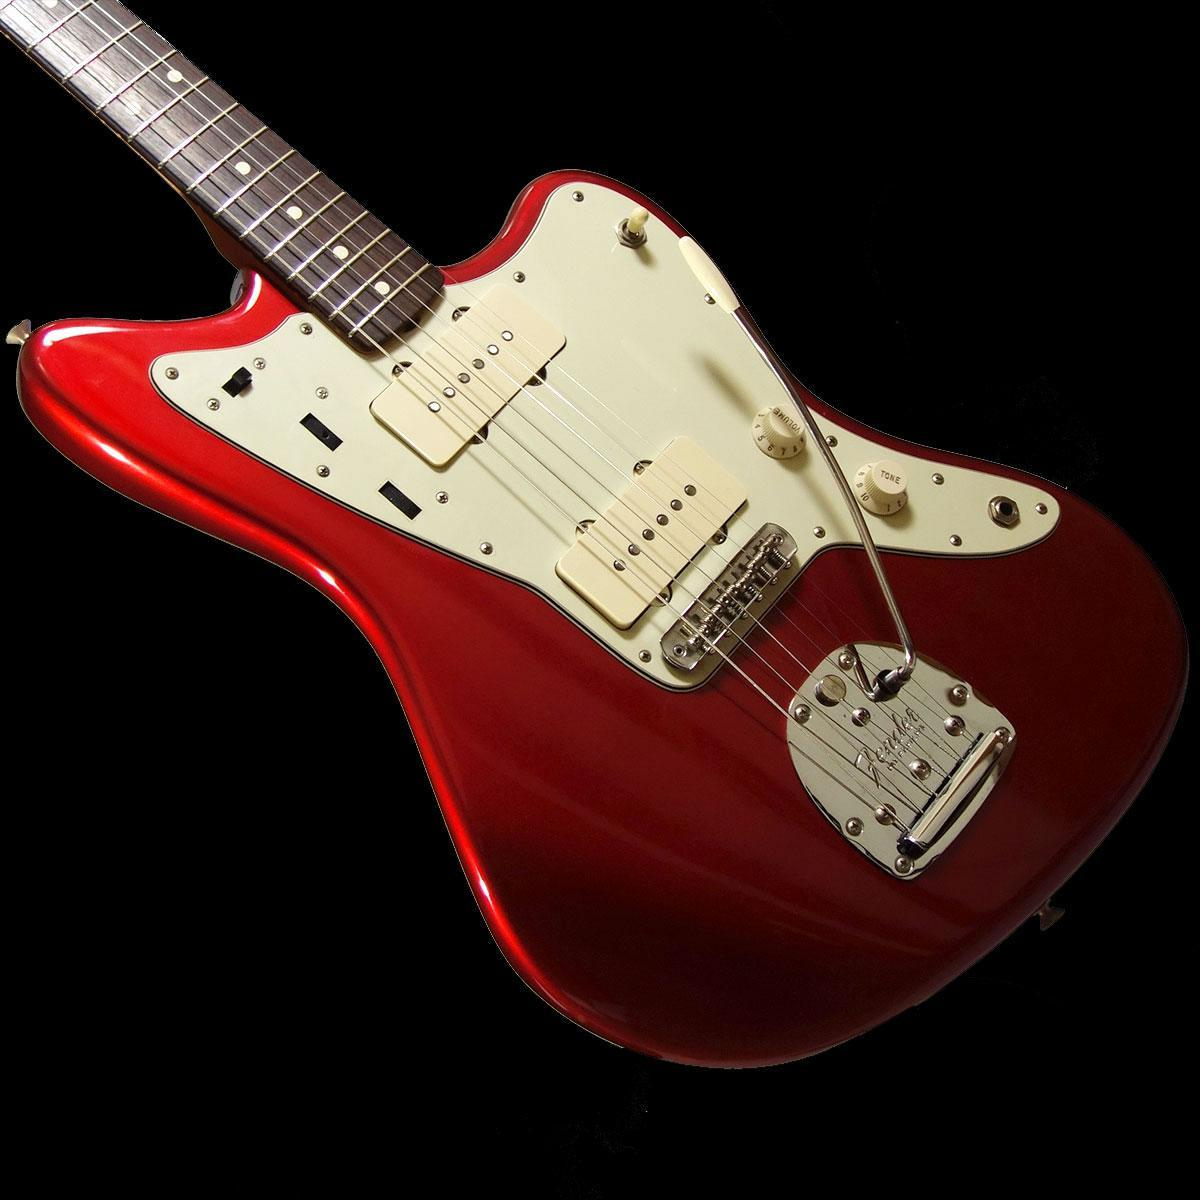 Fender American Vintage 62 Jazzmaster CAR (Candy Apple Red) [Nagoya Sakae]